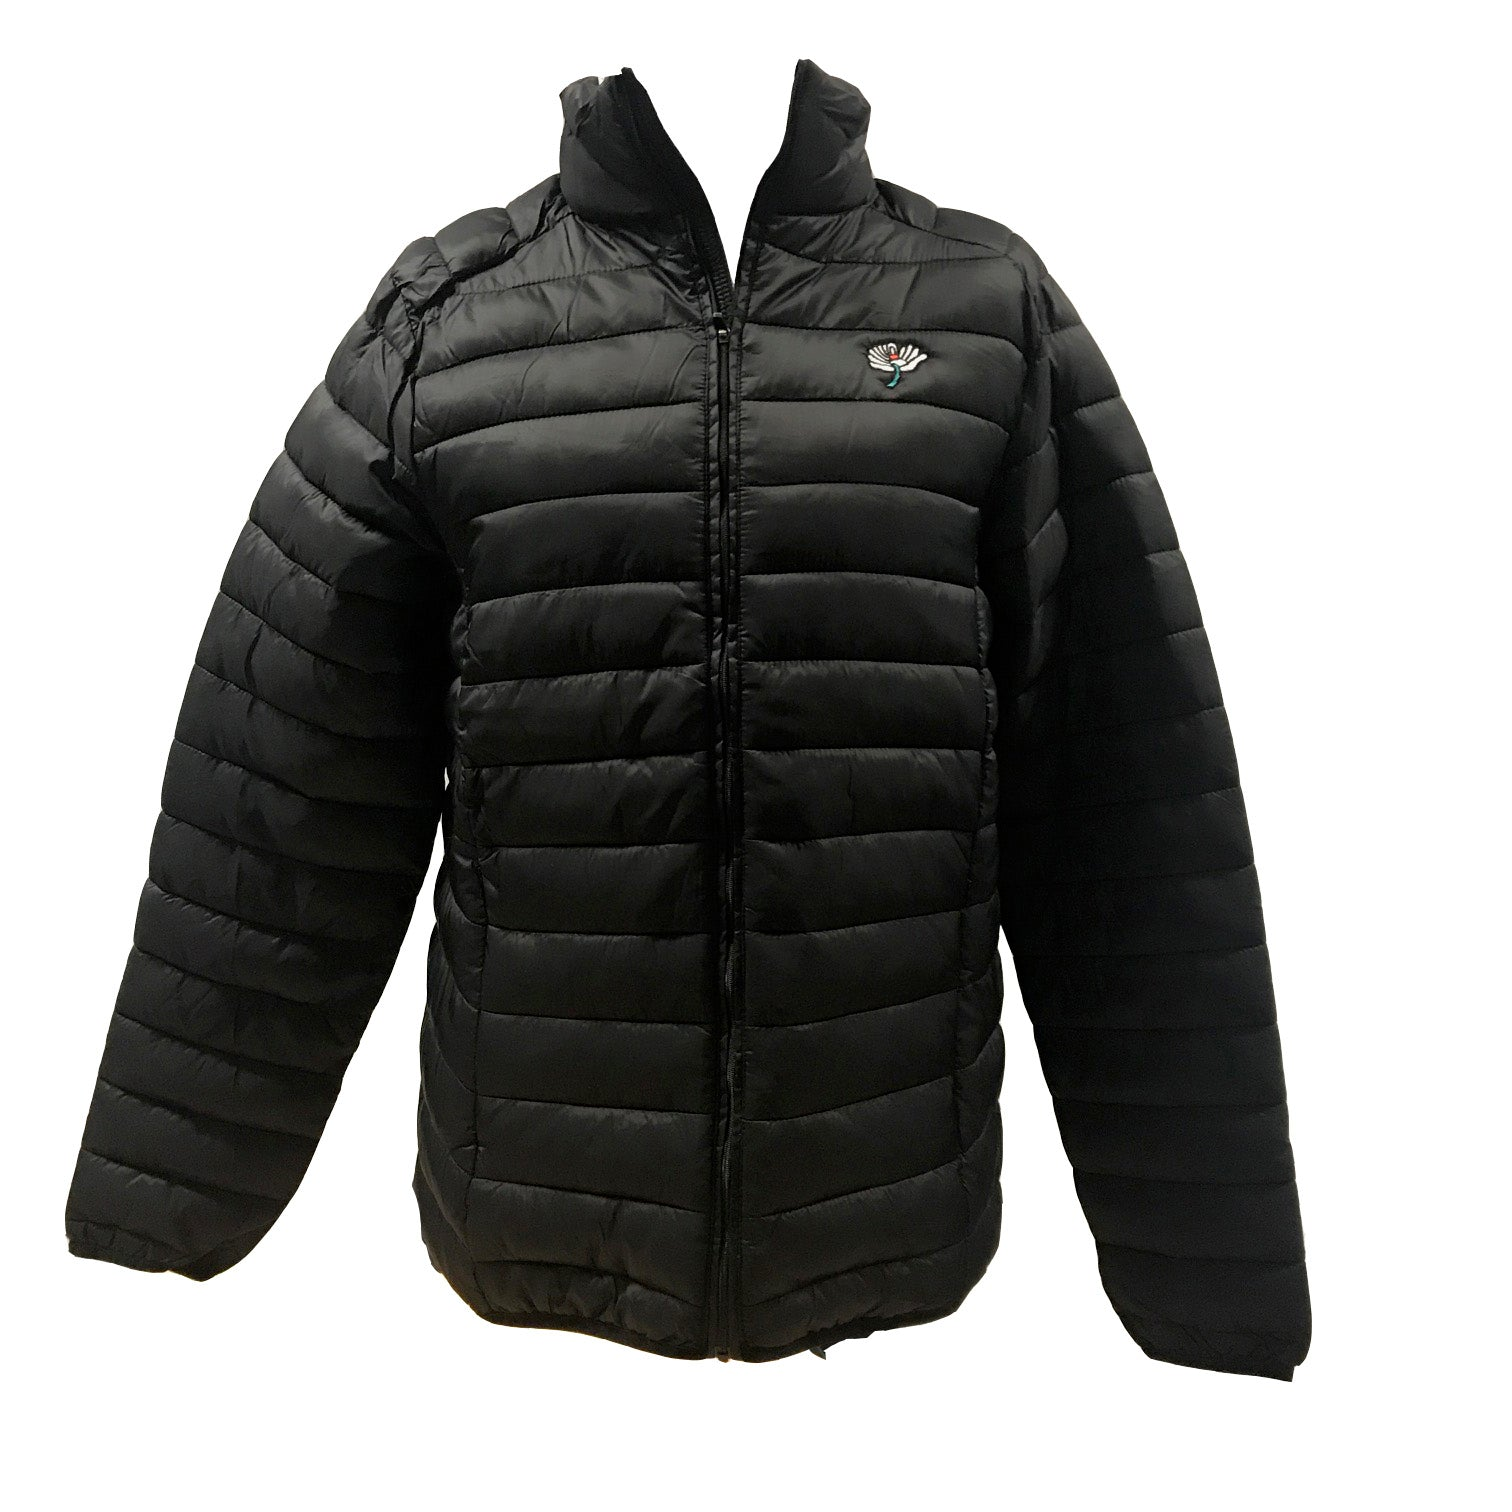 YCCC Black Pack Jacket